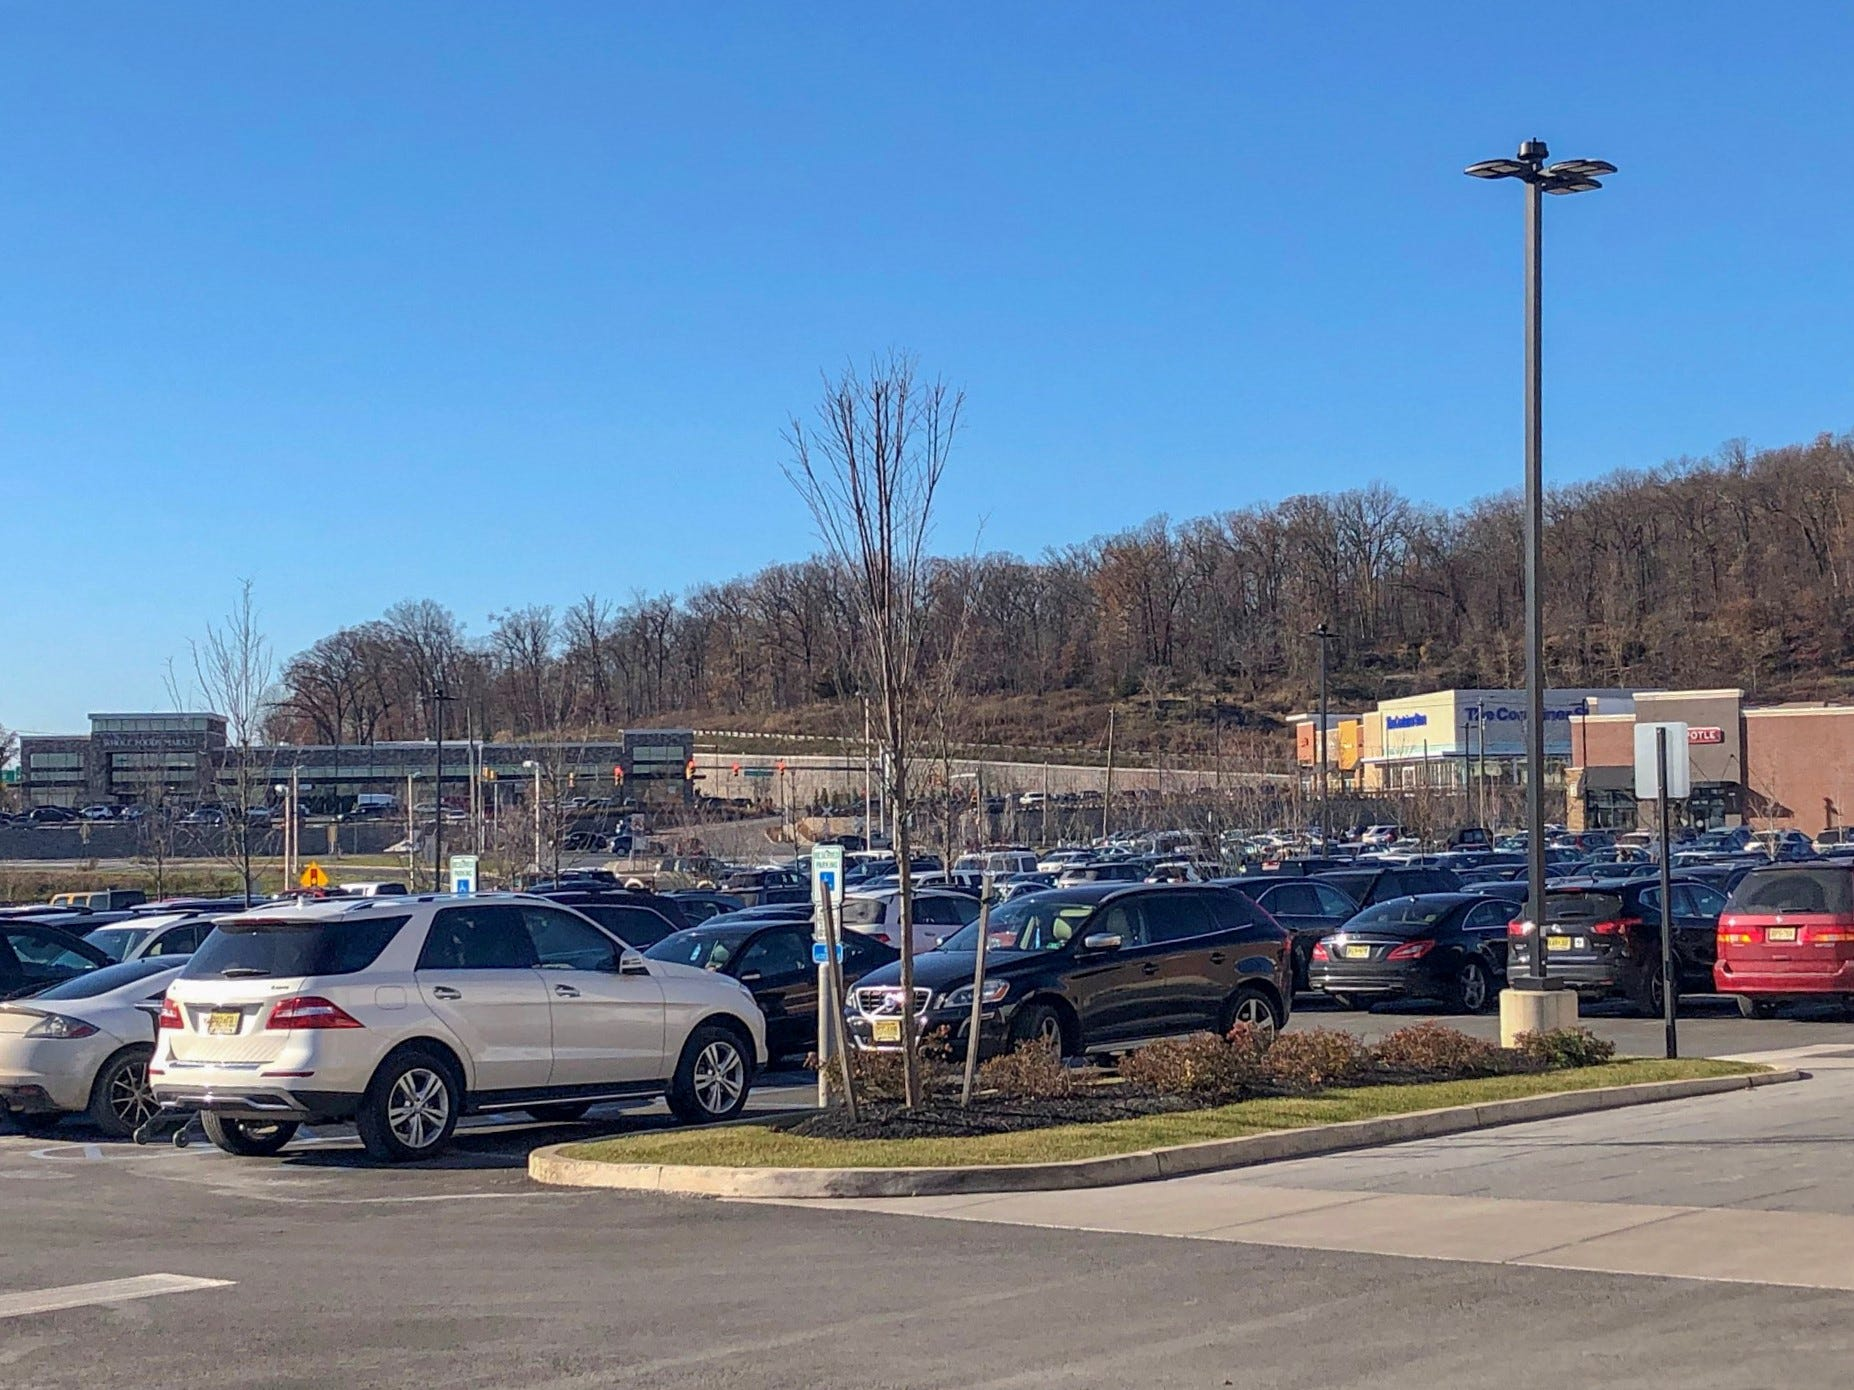 Black Friday shoppers take advantage of good deals at Chimney Rock Plaza in Bridgewater at 1:30 p.m. on Nov. 23